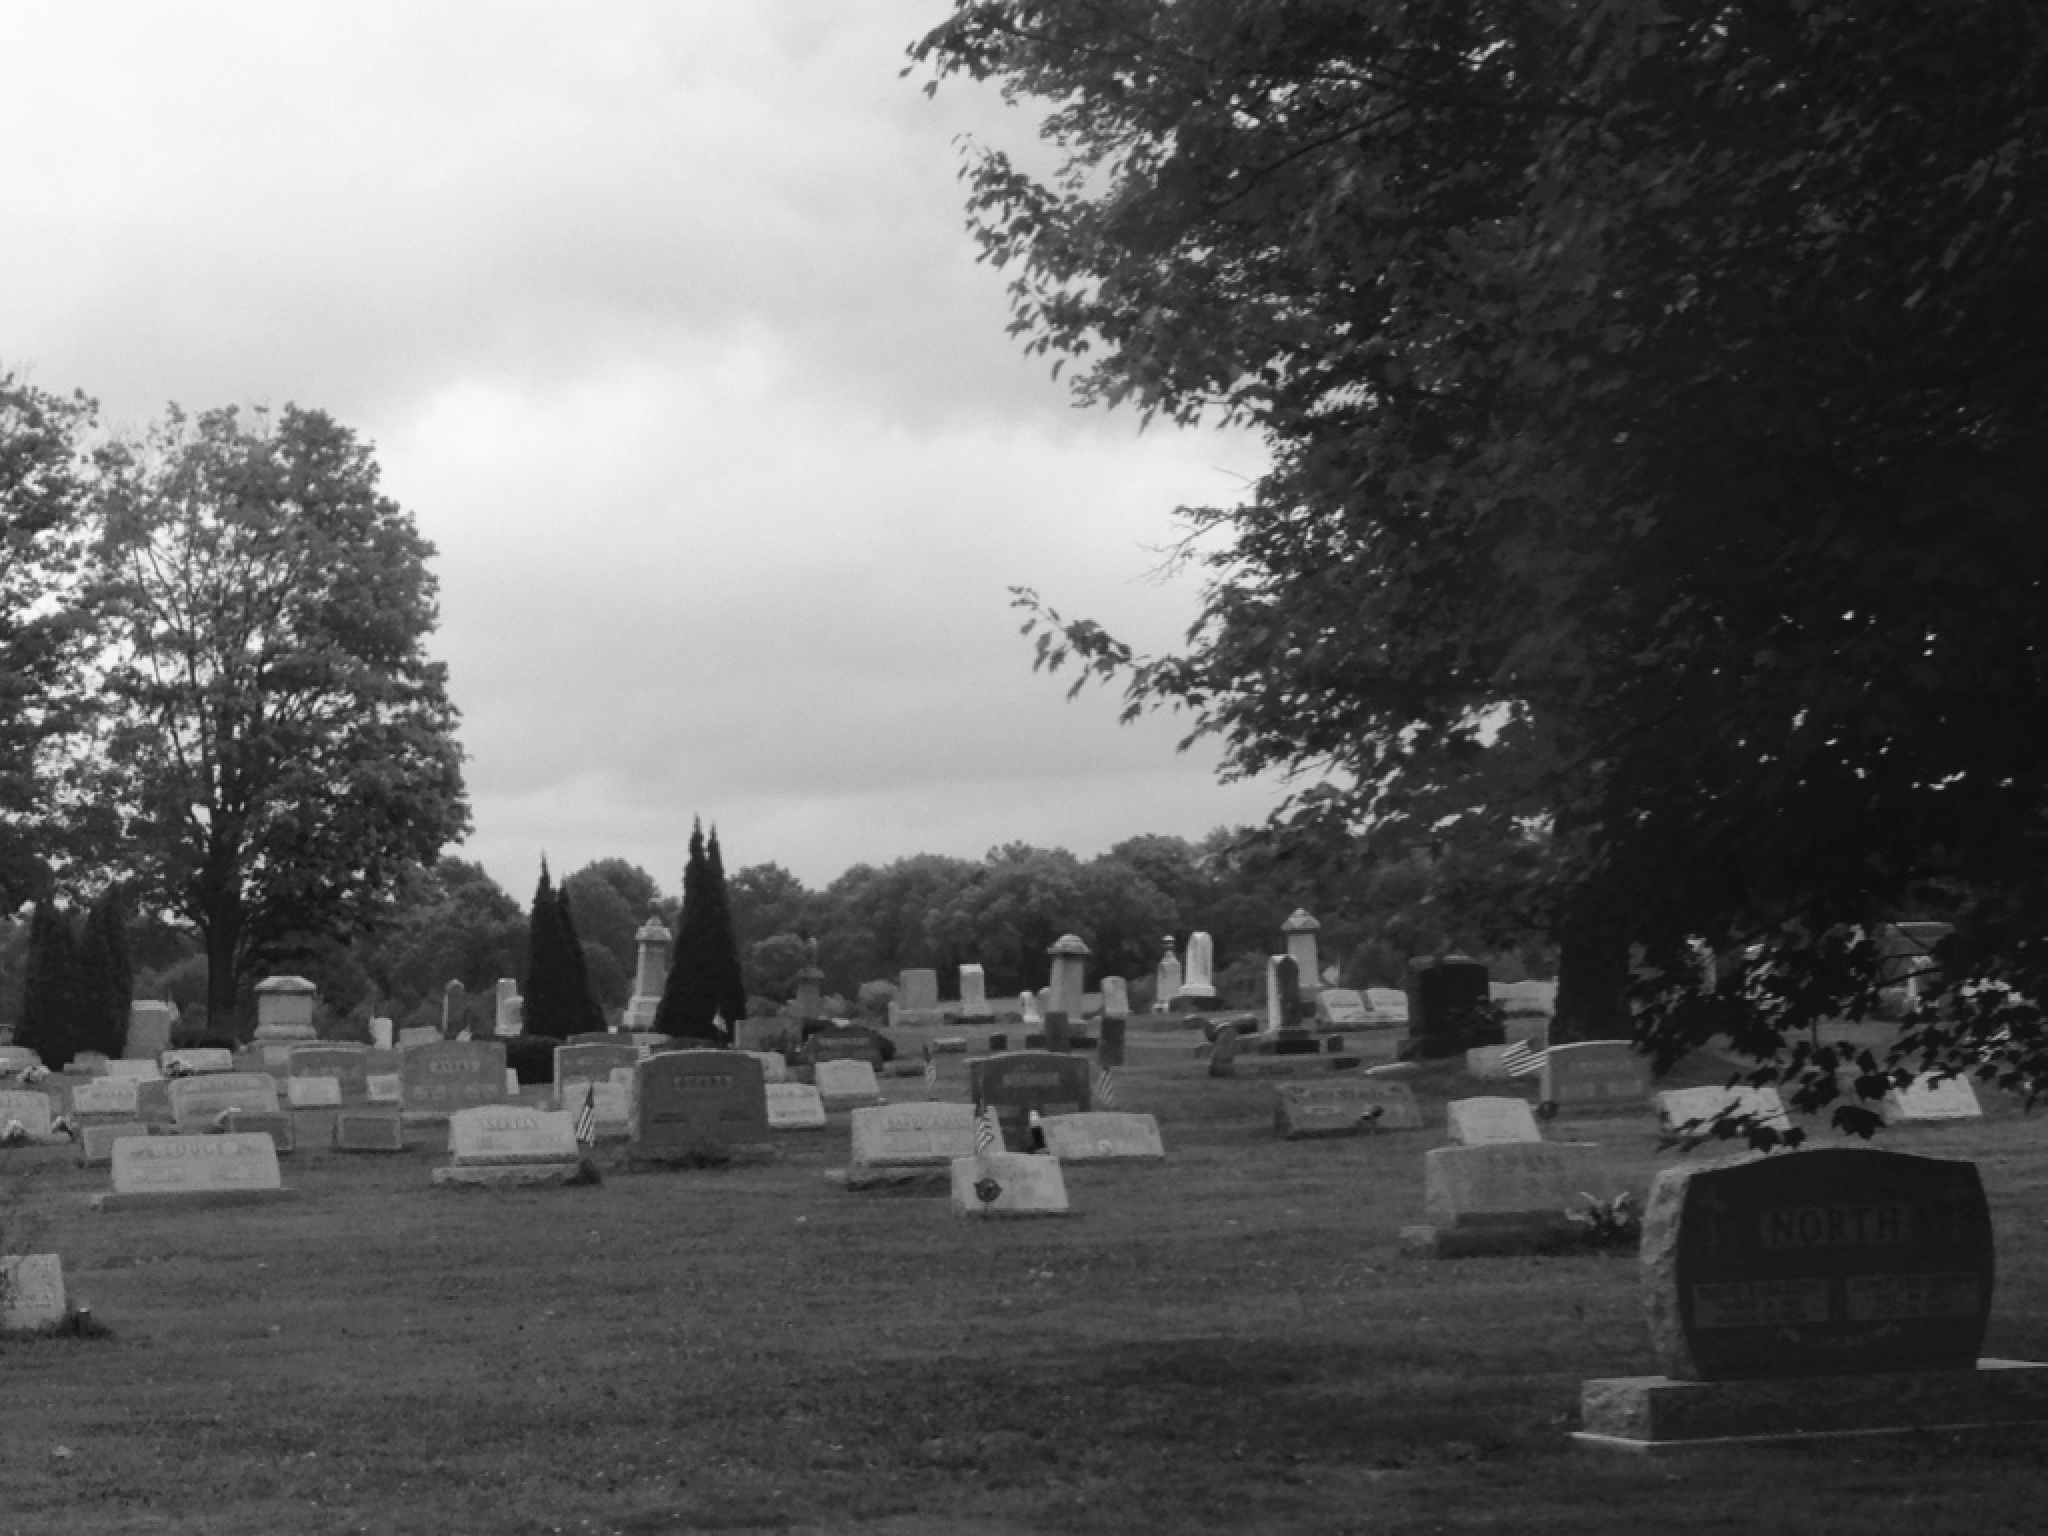 Graveyards by samantha.jenkins.5030